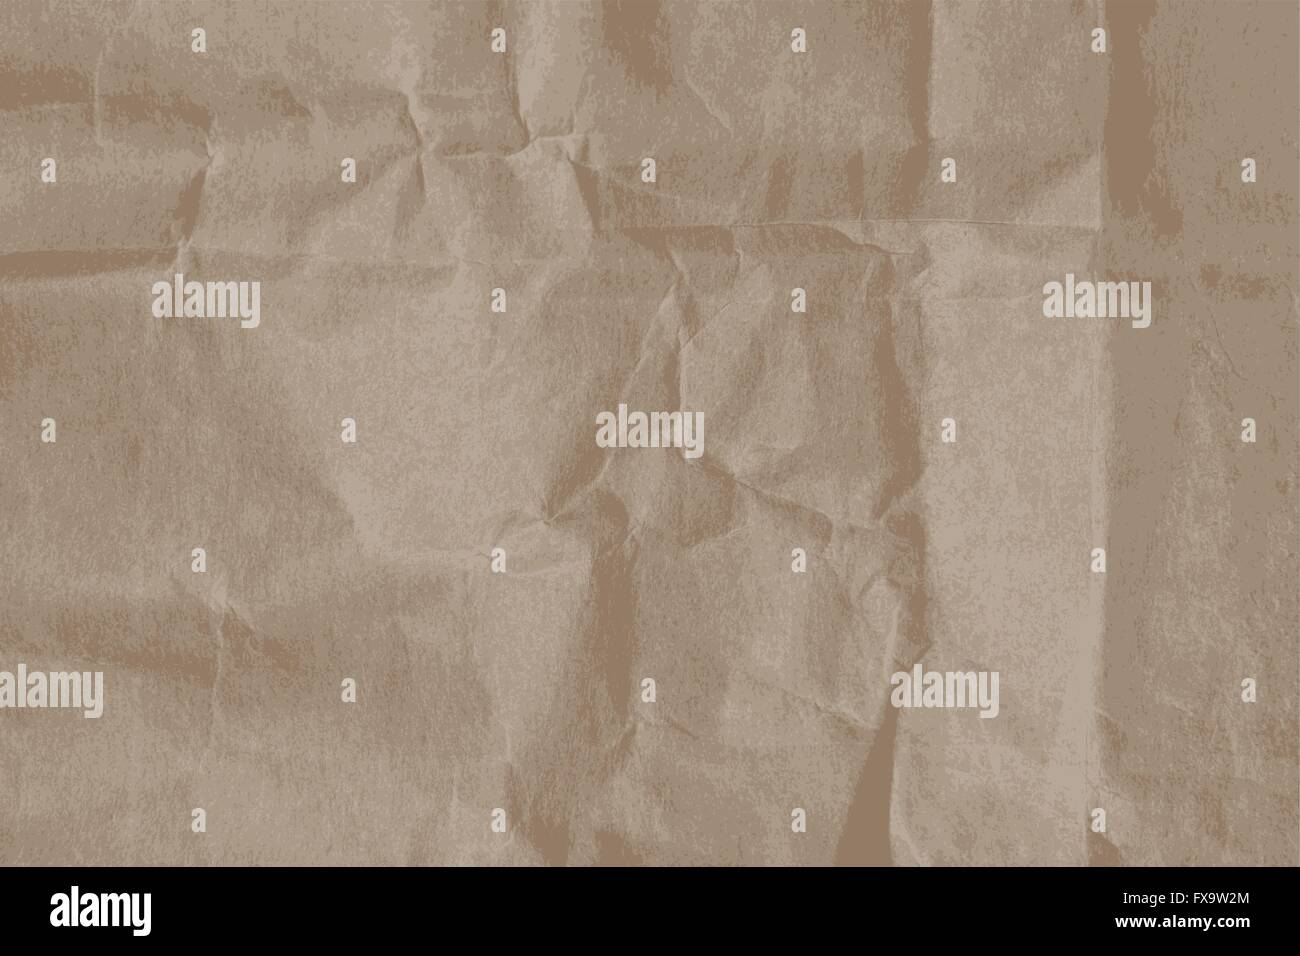 Wrinkled paper texture - Stock Image